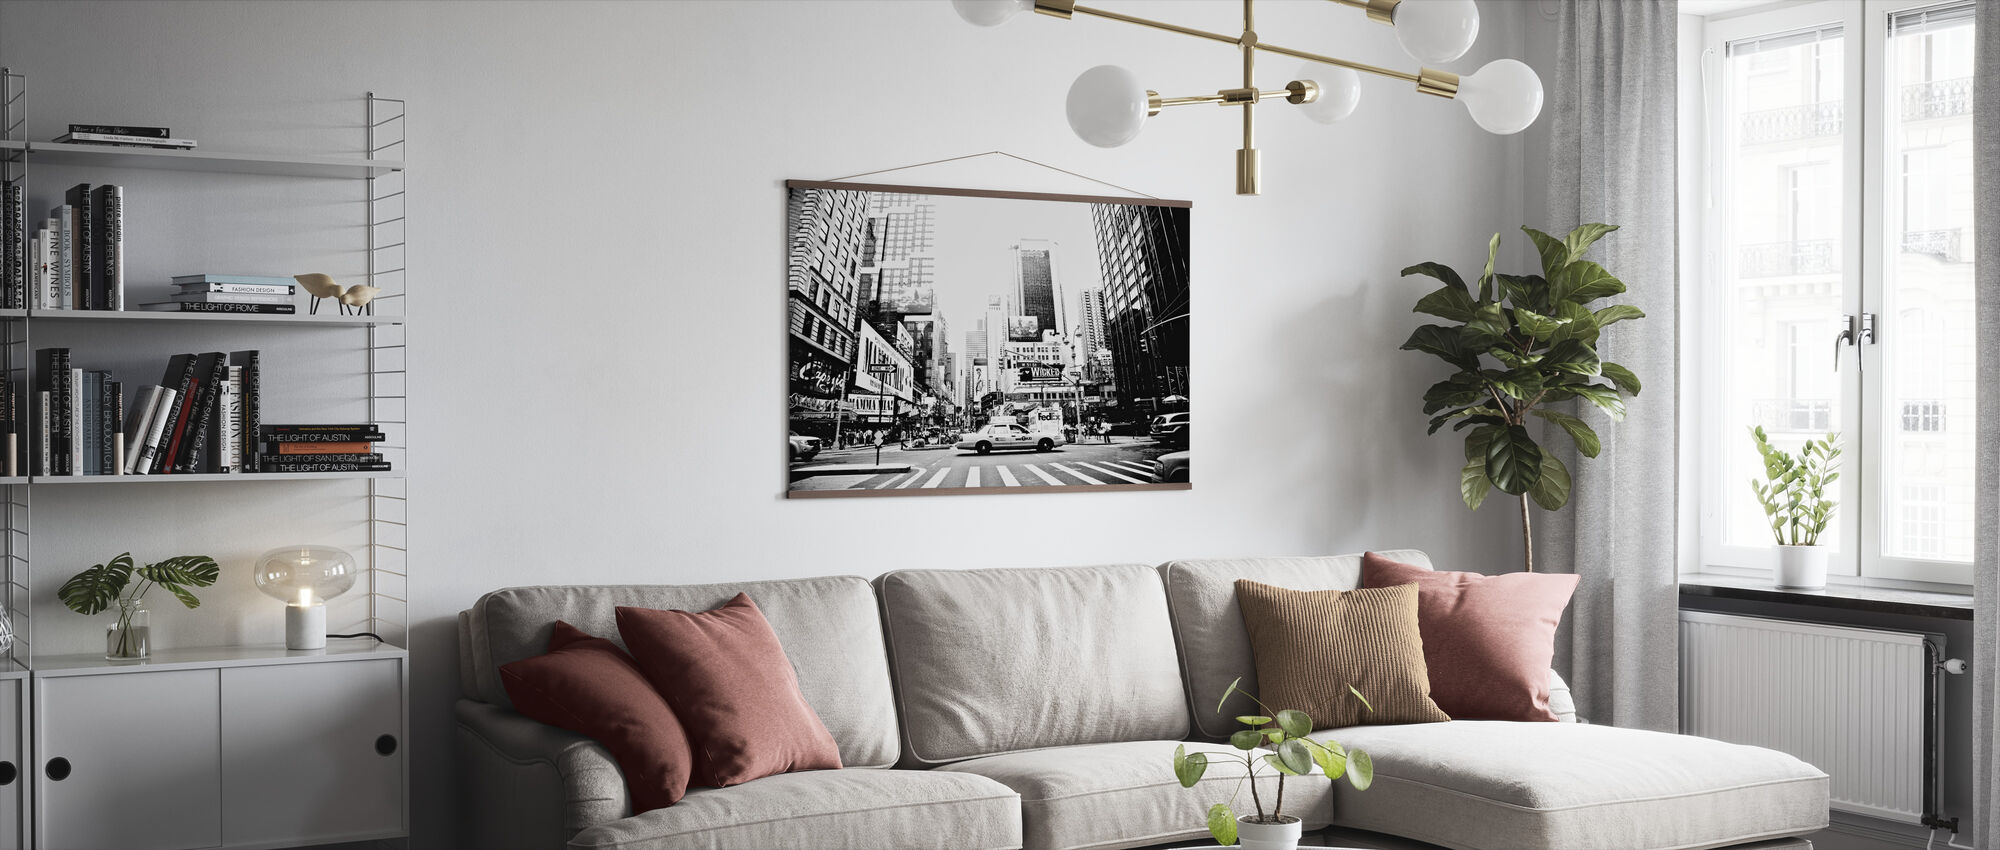 Busy Times Square, New York - Poster - Living Room